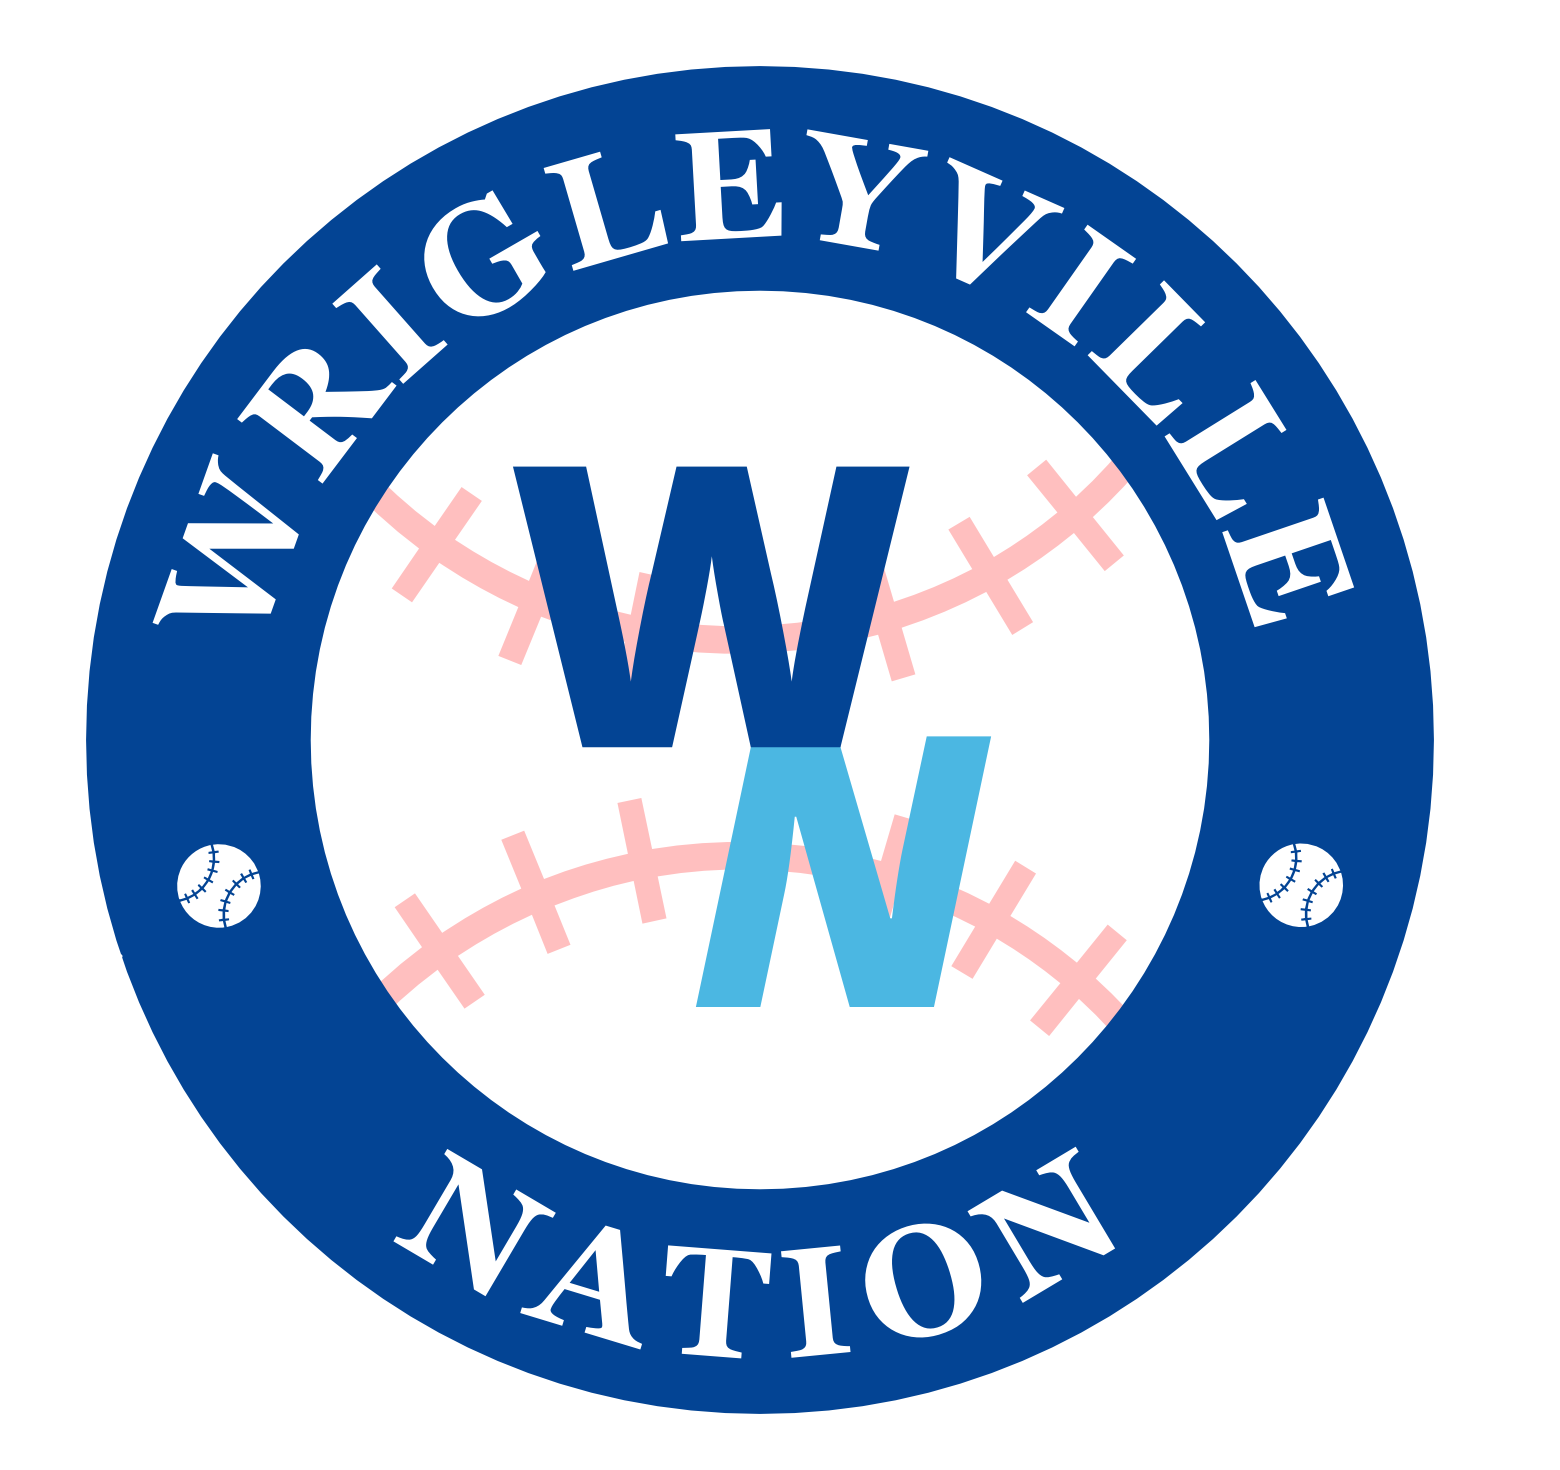 Wrigleyville Nation Ep 260 - Guest: Greg Huss, Cubs Trade Your Favorites Away, Prospect Analysis, All The Emotions, & More show art